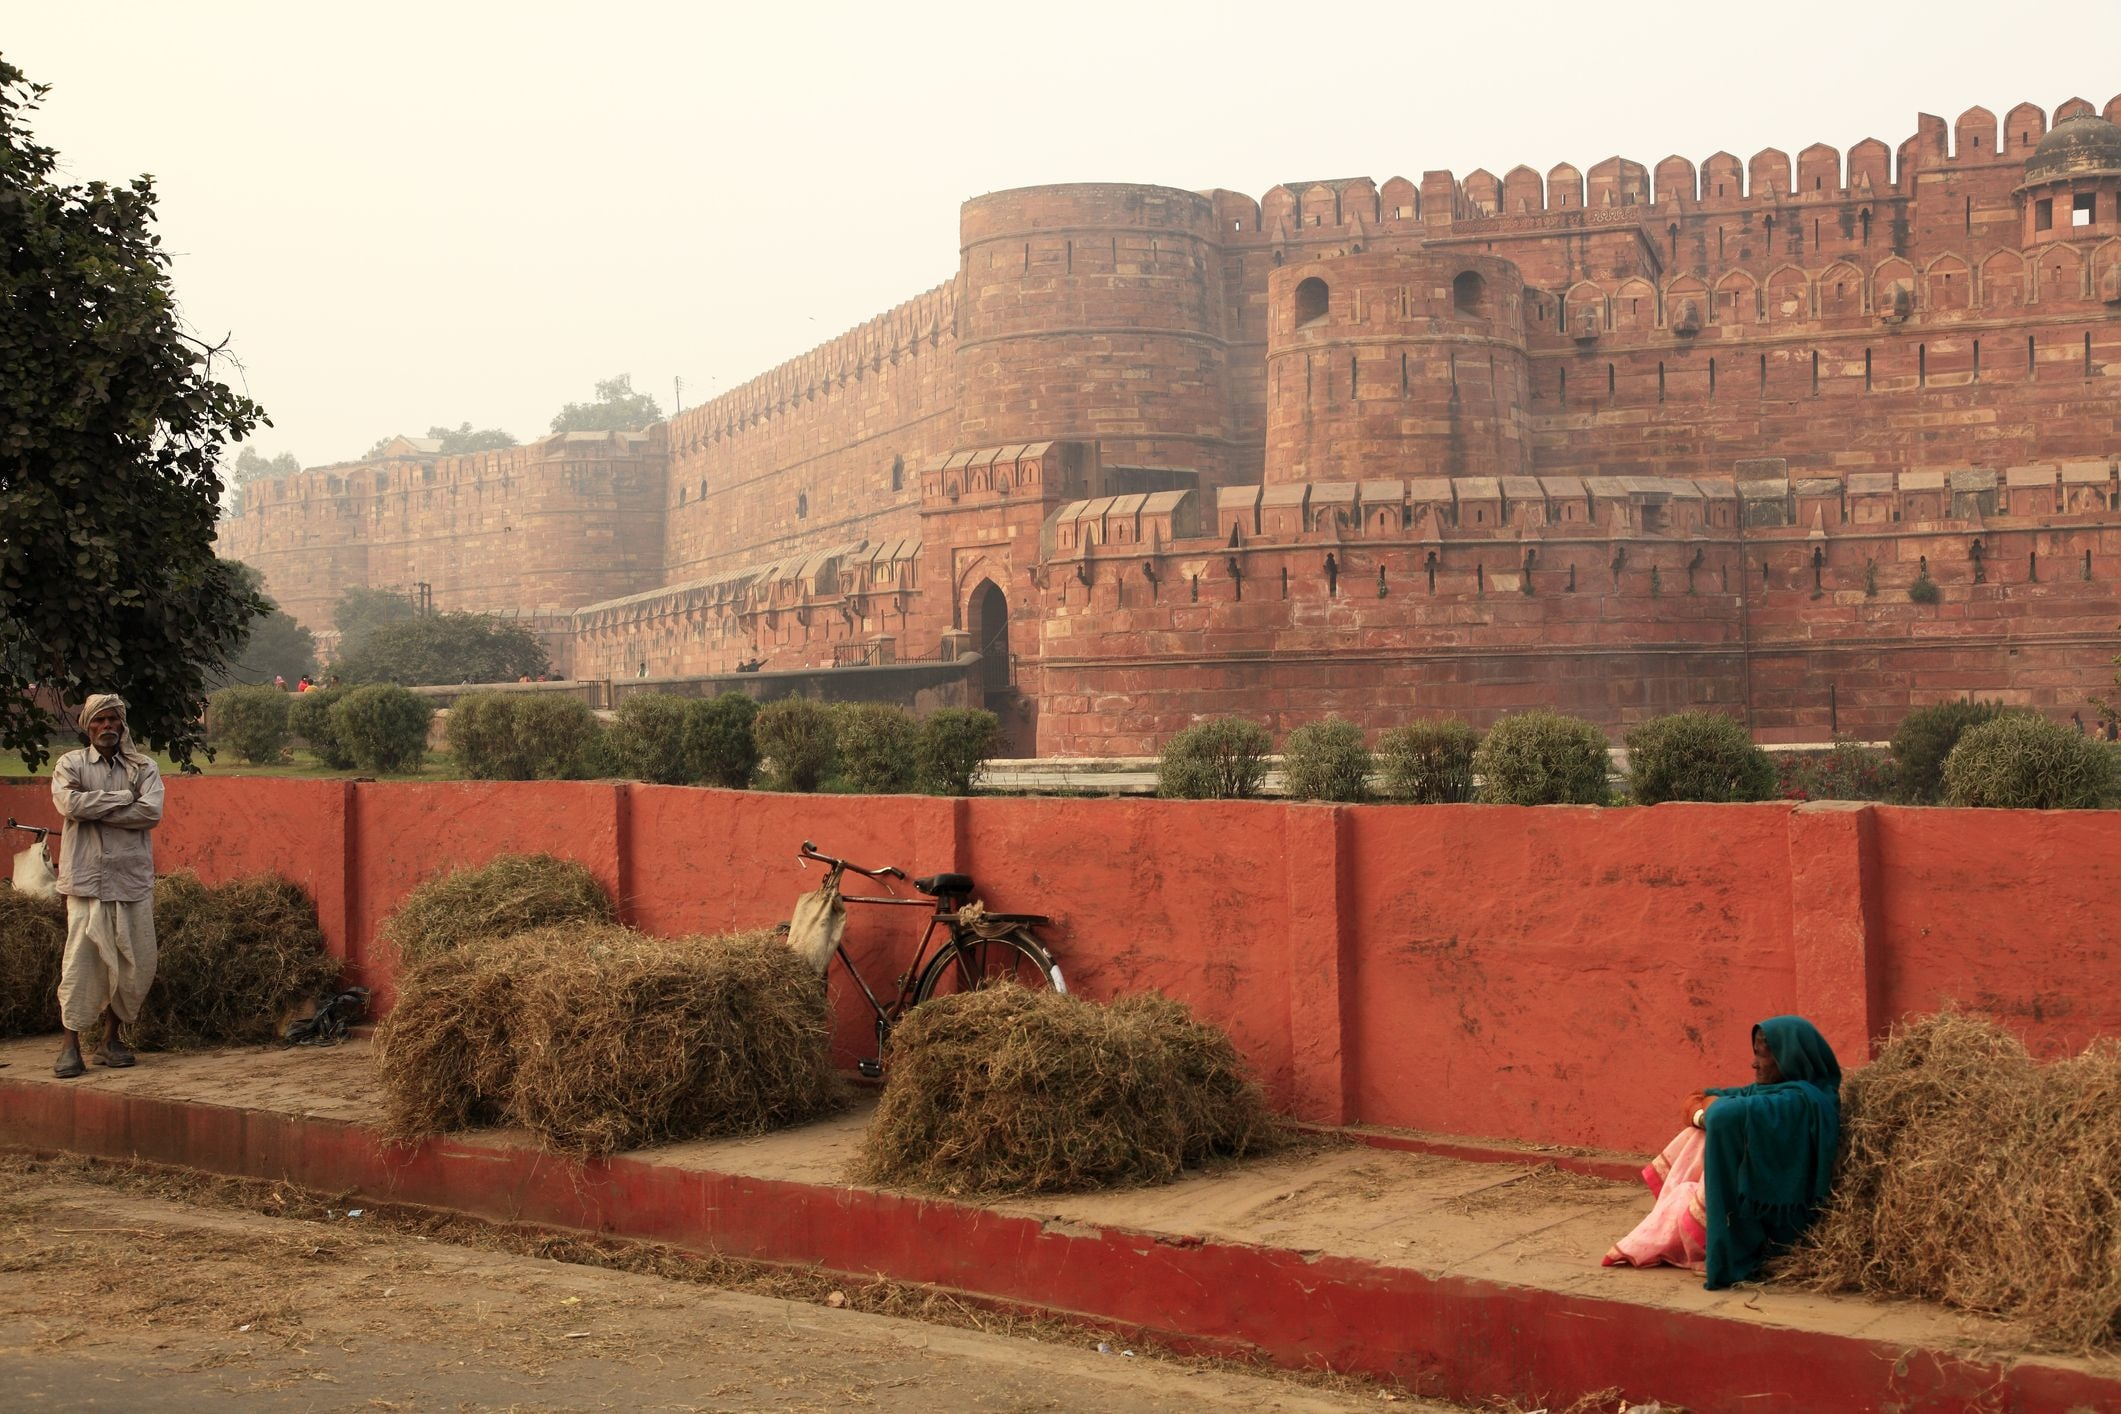 Agra Fort/Red Fort